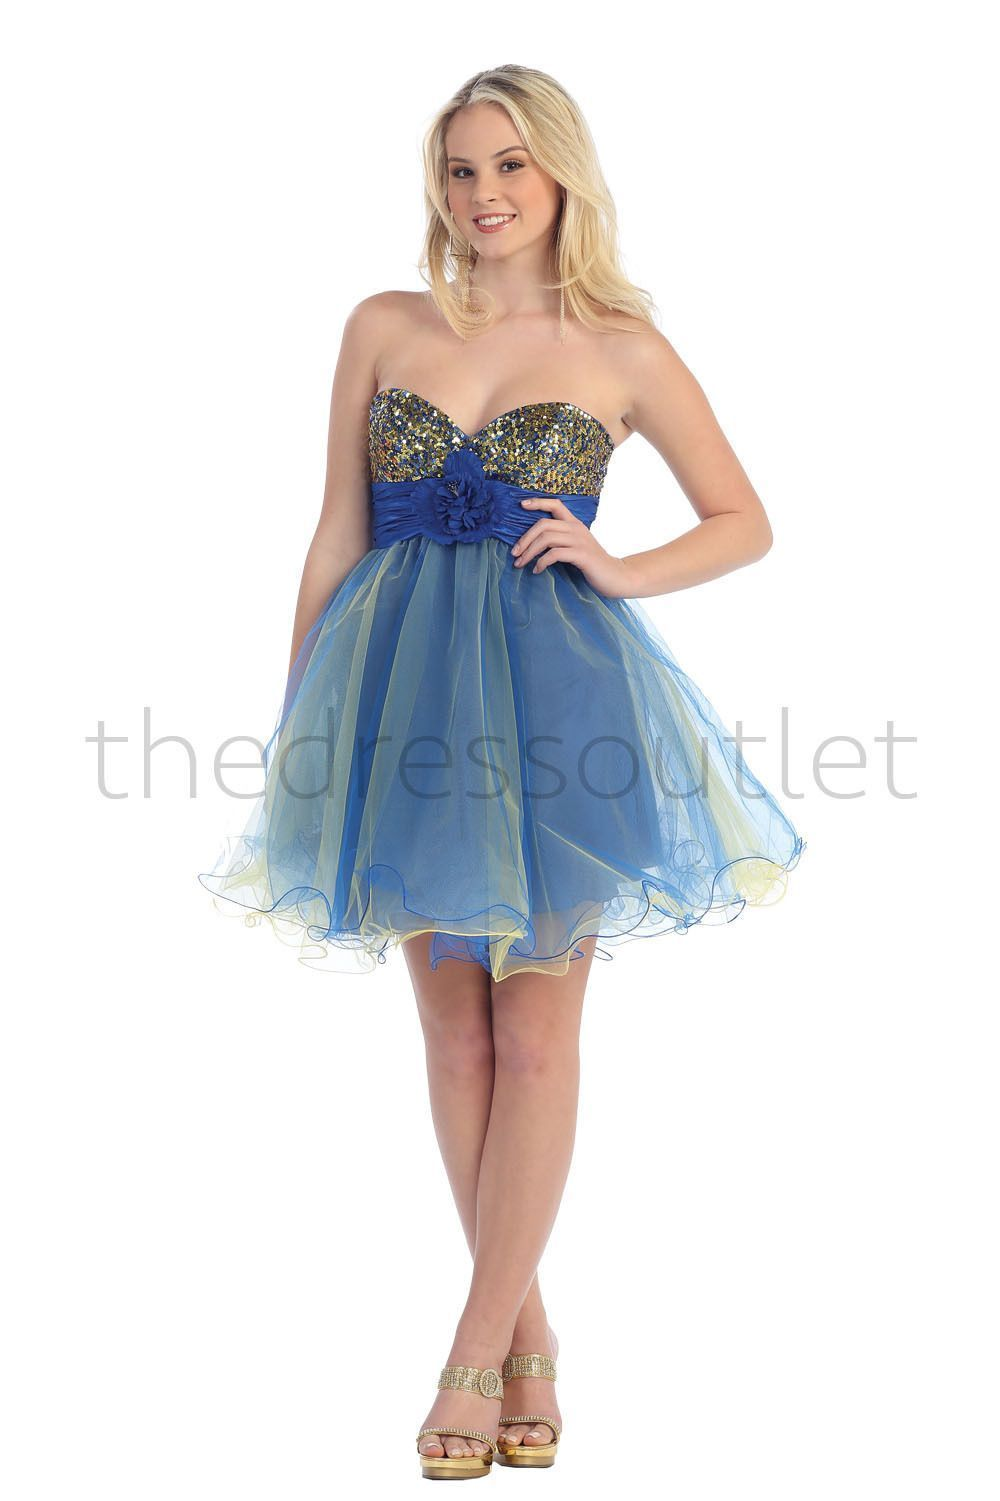 Short Tulle Prom Dress Sassy Homecoming Mini Formal-The Dress ...